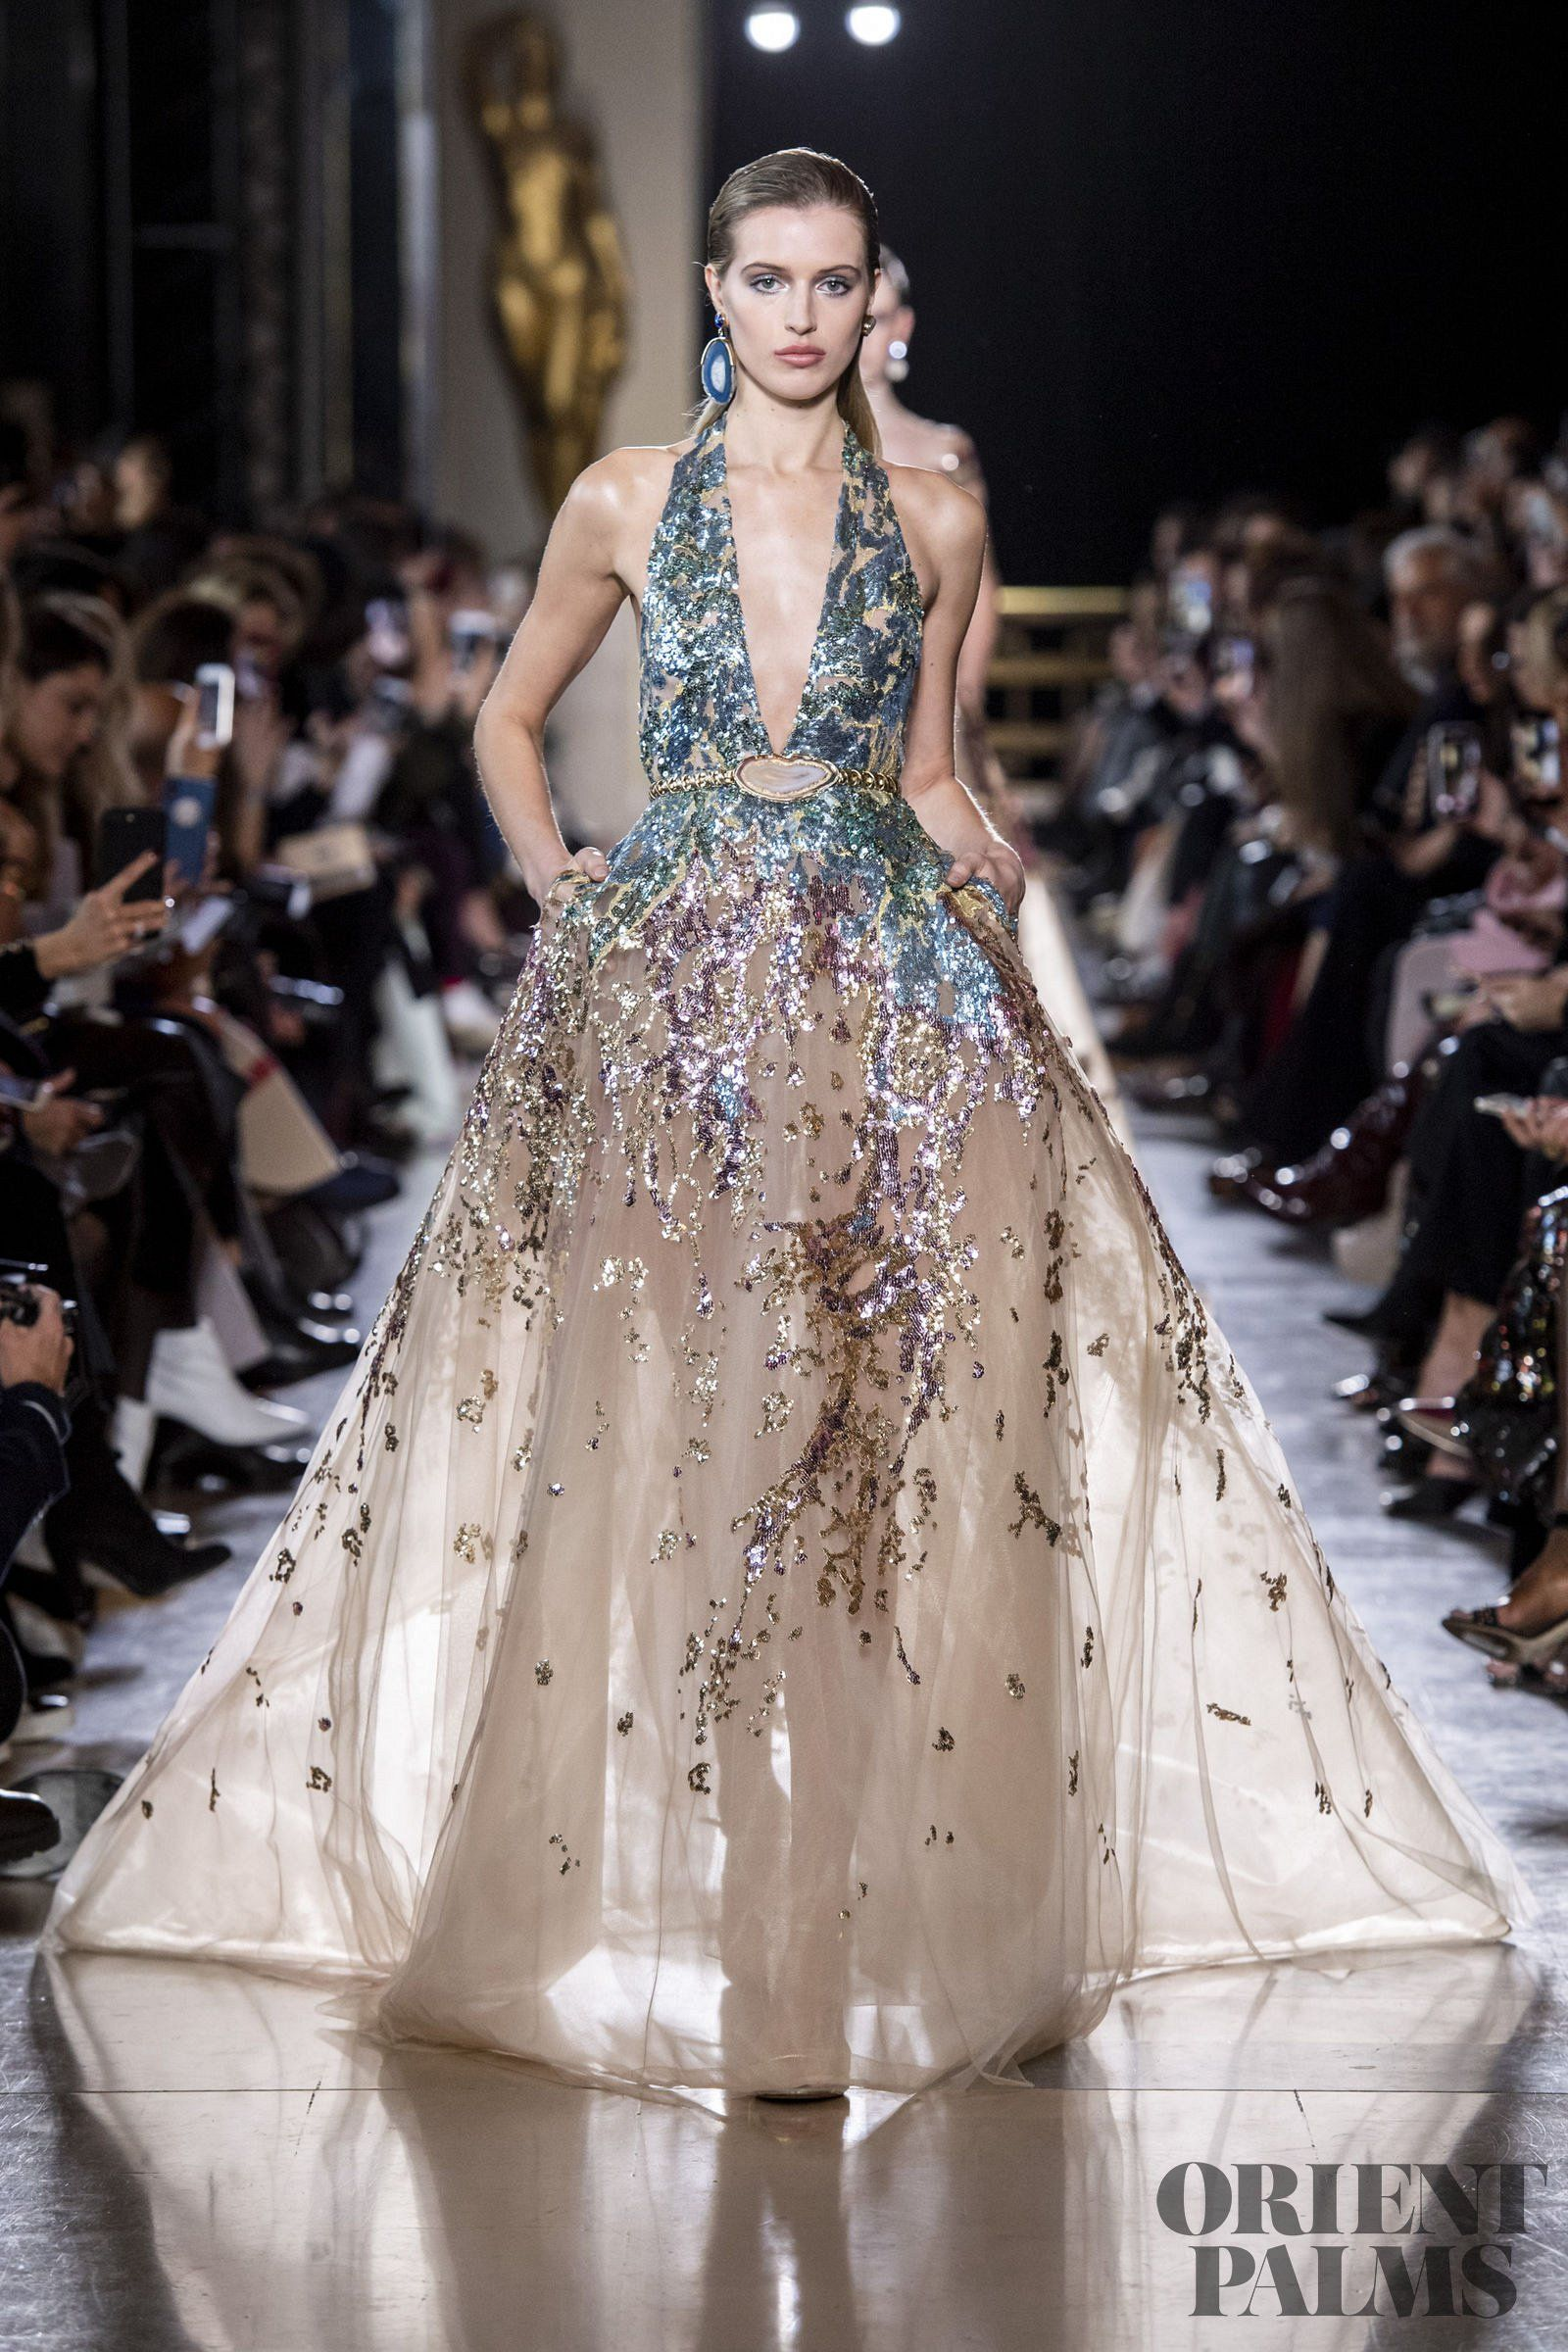 Elie Saab Frühjahr/Sommer 17 - Couture  Gowns dresses, Tulle